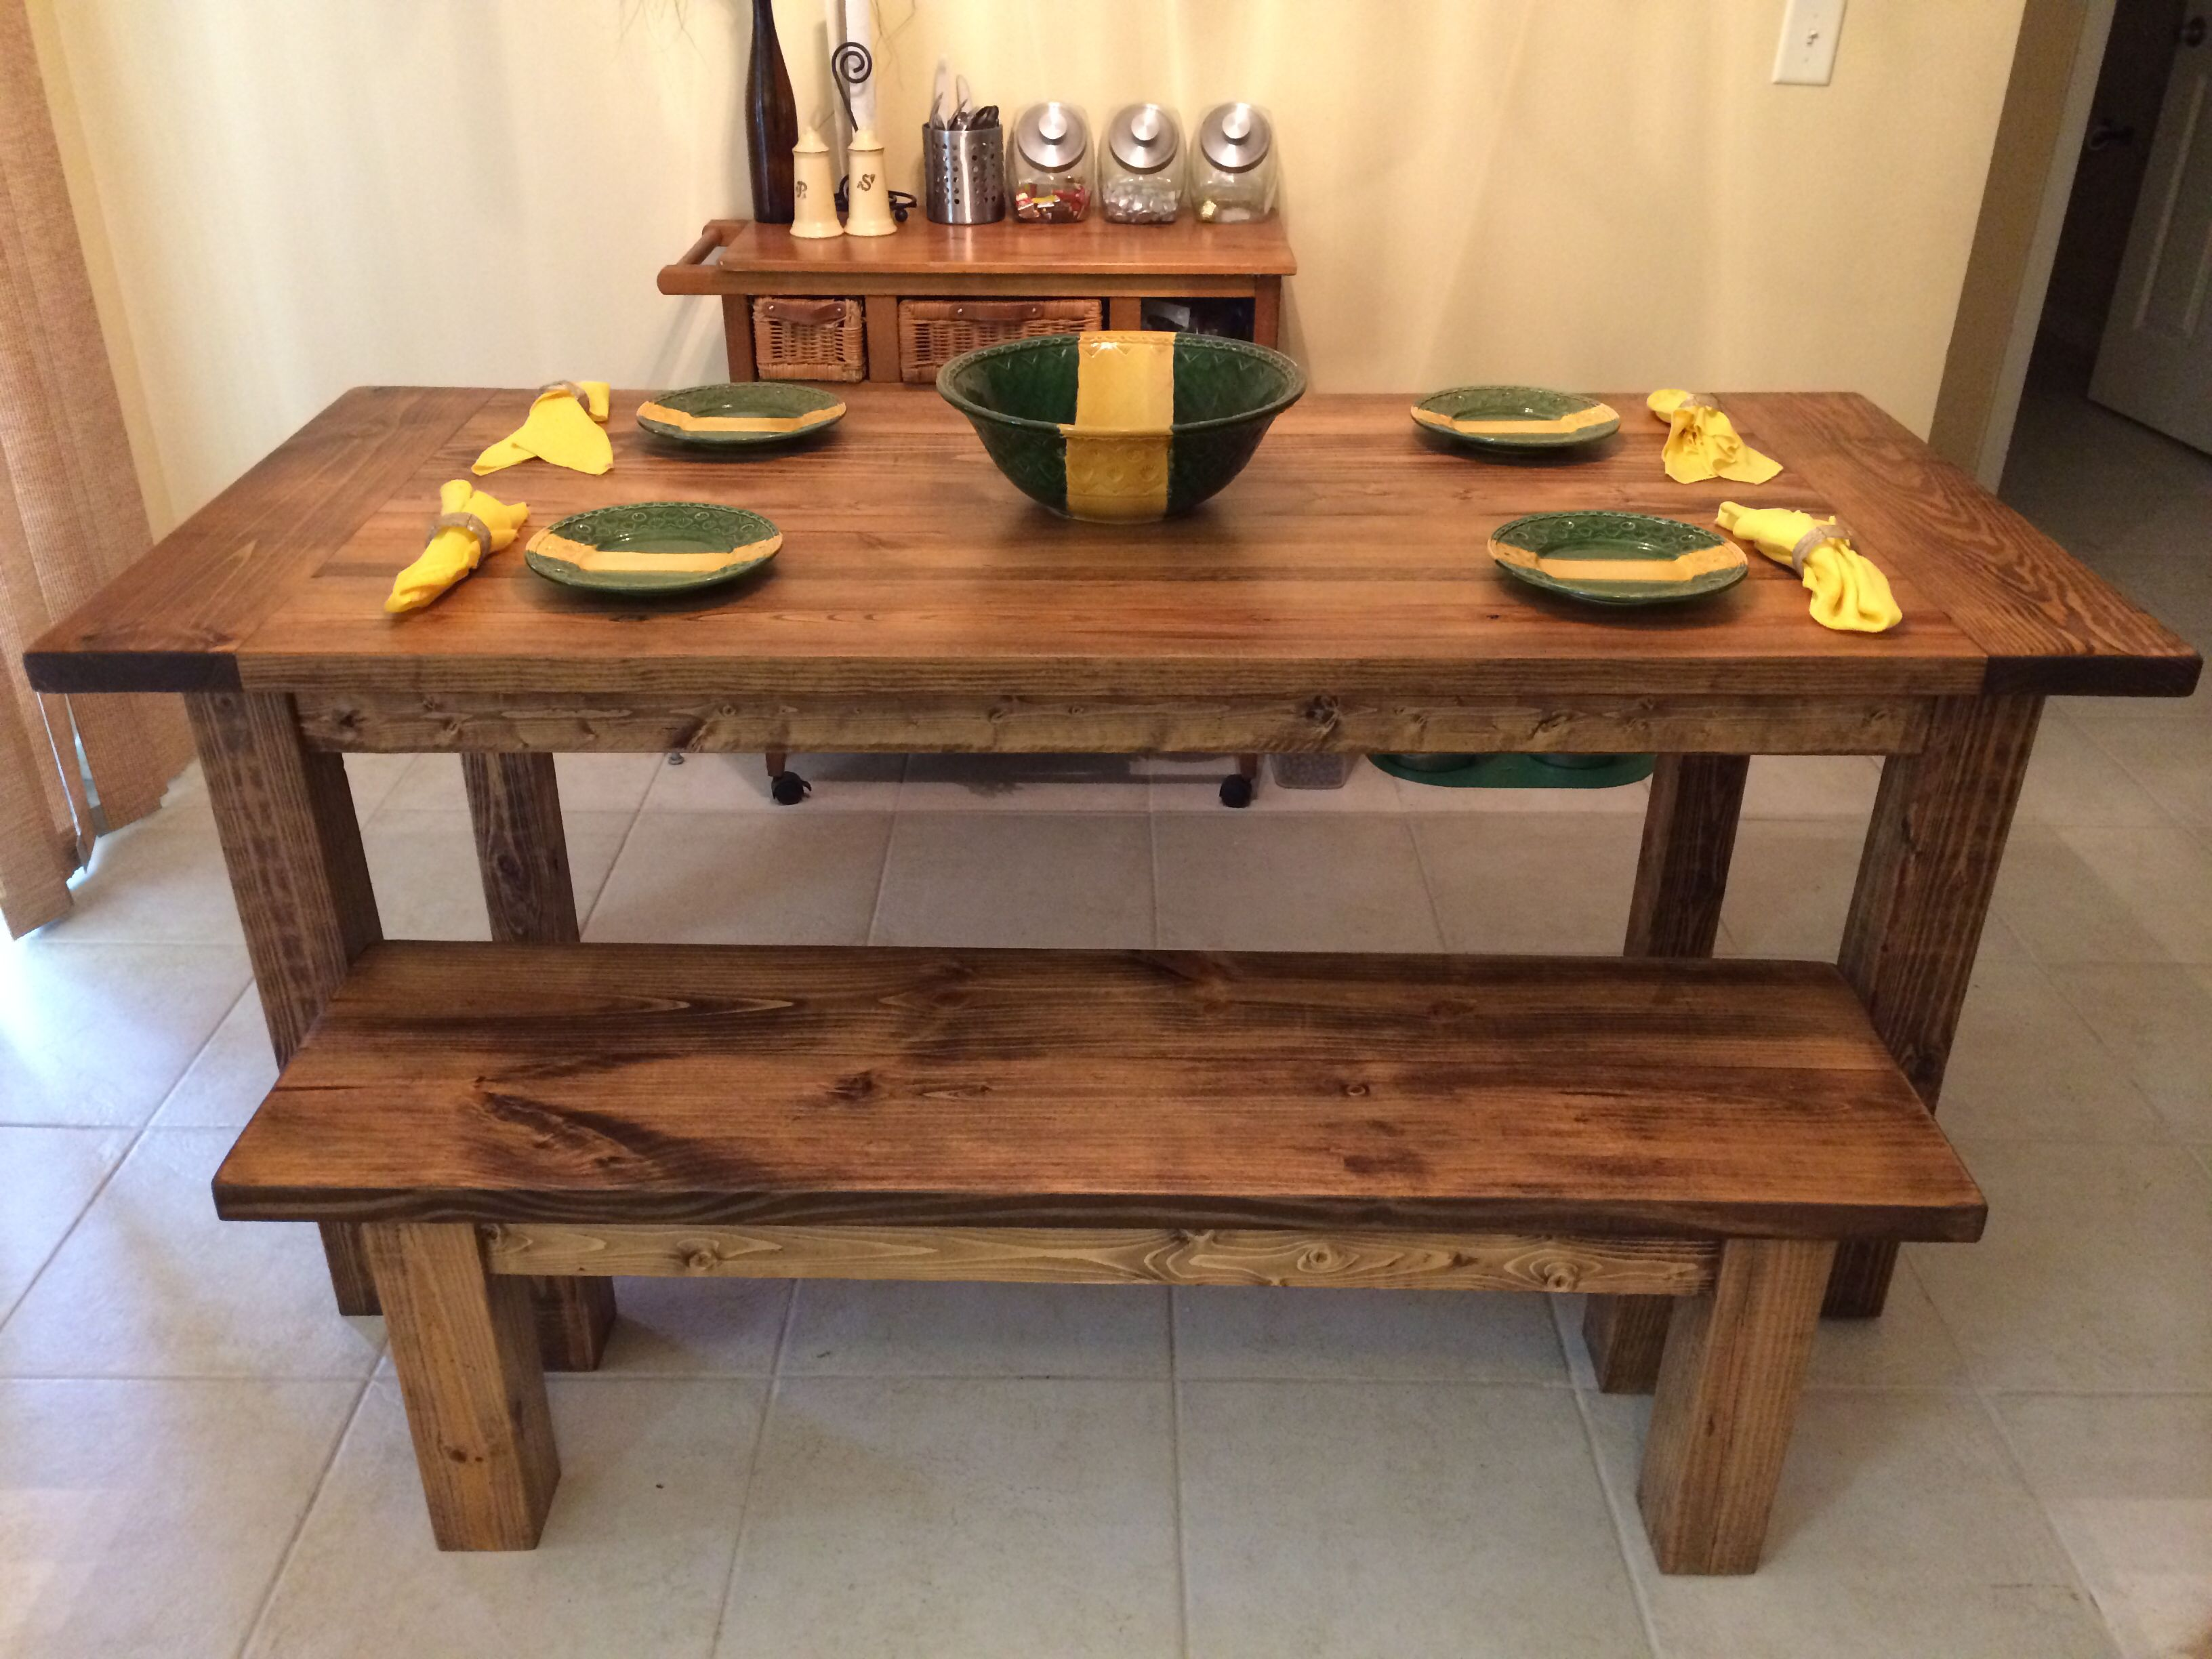 6' farmhouse table with a smooth/jointed table top